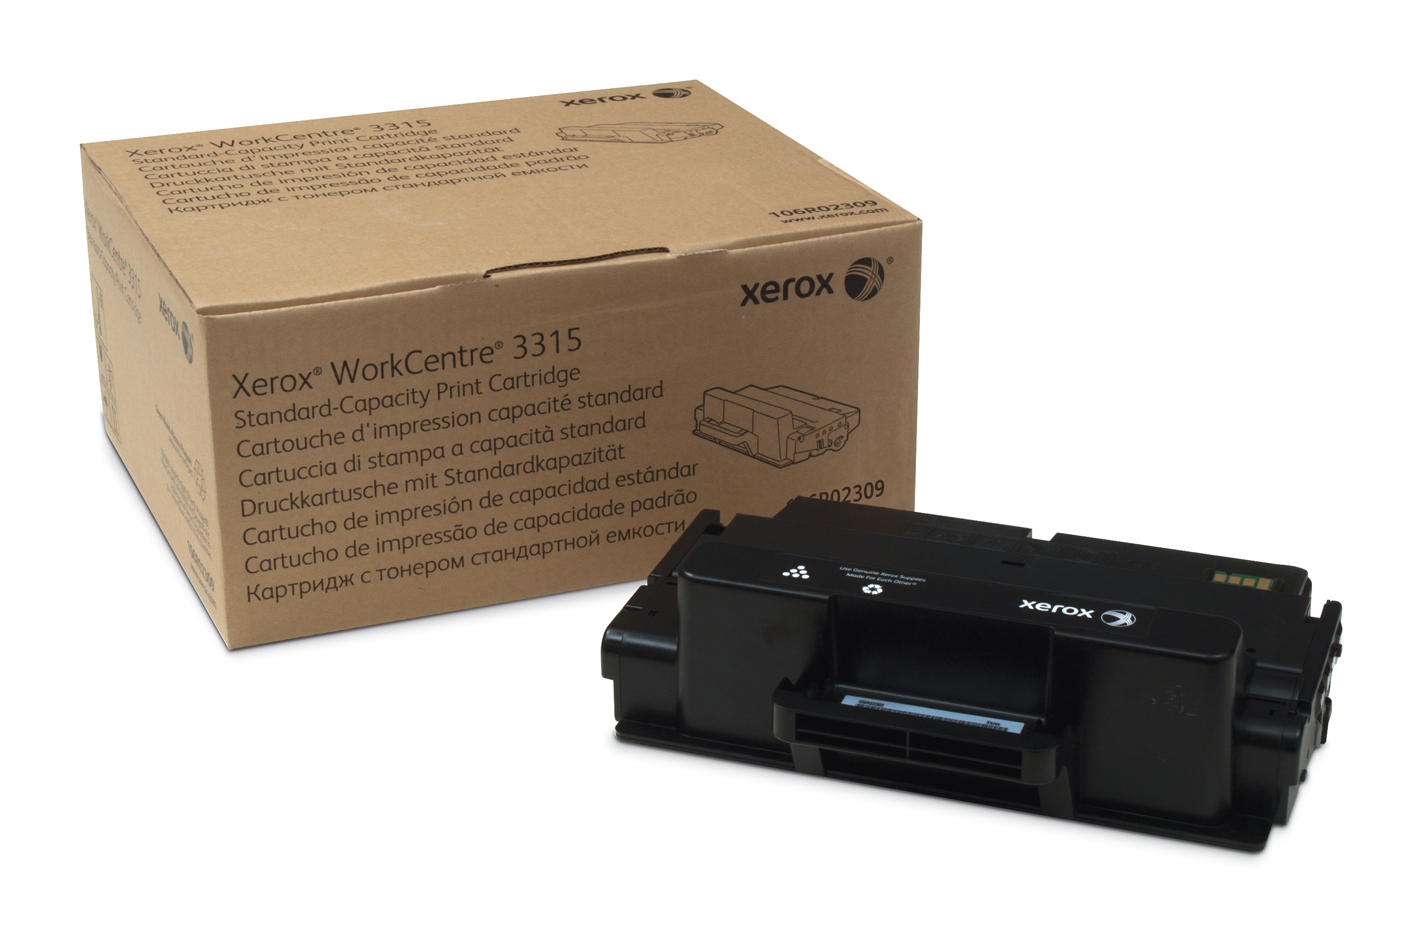 Xerox - Genuine Supplies         Workcentre 3315 Std Capacity        Imaging Module (2300 Pages)         106r02309